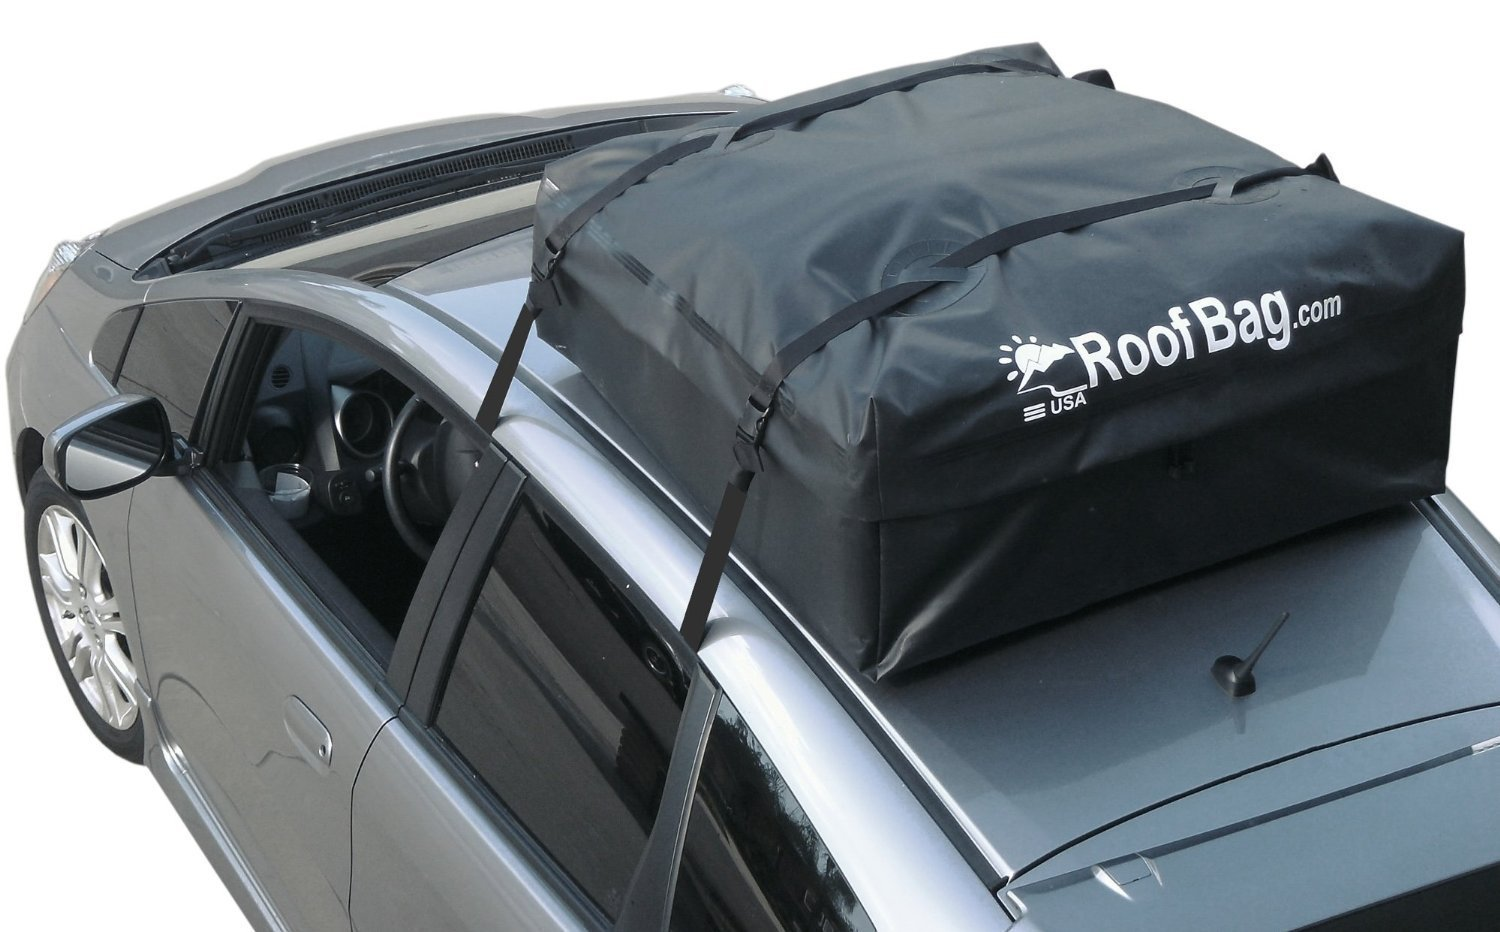 RoofBag Rooftop Cargo Carrier Bundle + Protective Mat + Storage Bag + Heavy Duty Straps Premium 100% Waterproof Made in USA 2 Yr Warranty   Fits All Cars: with or Without Rack by RoofBag